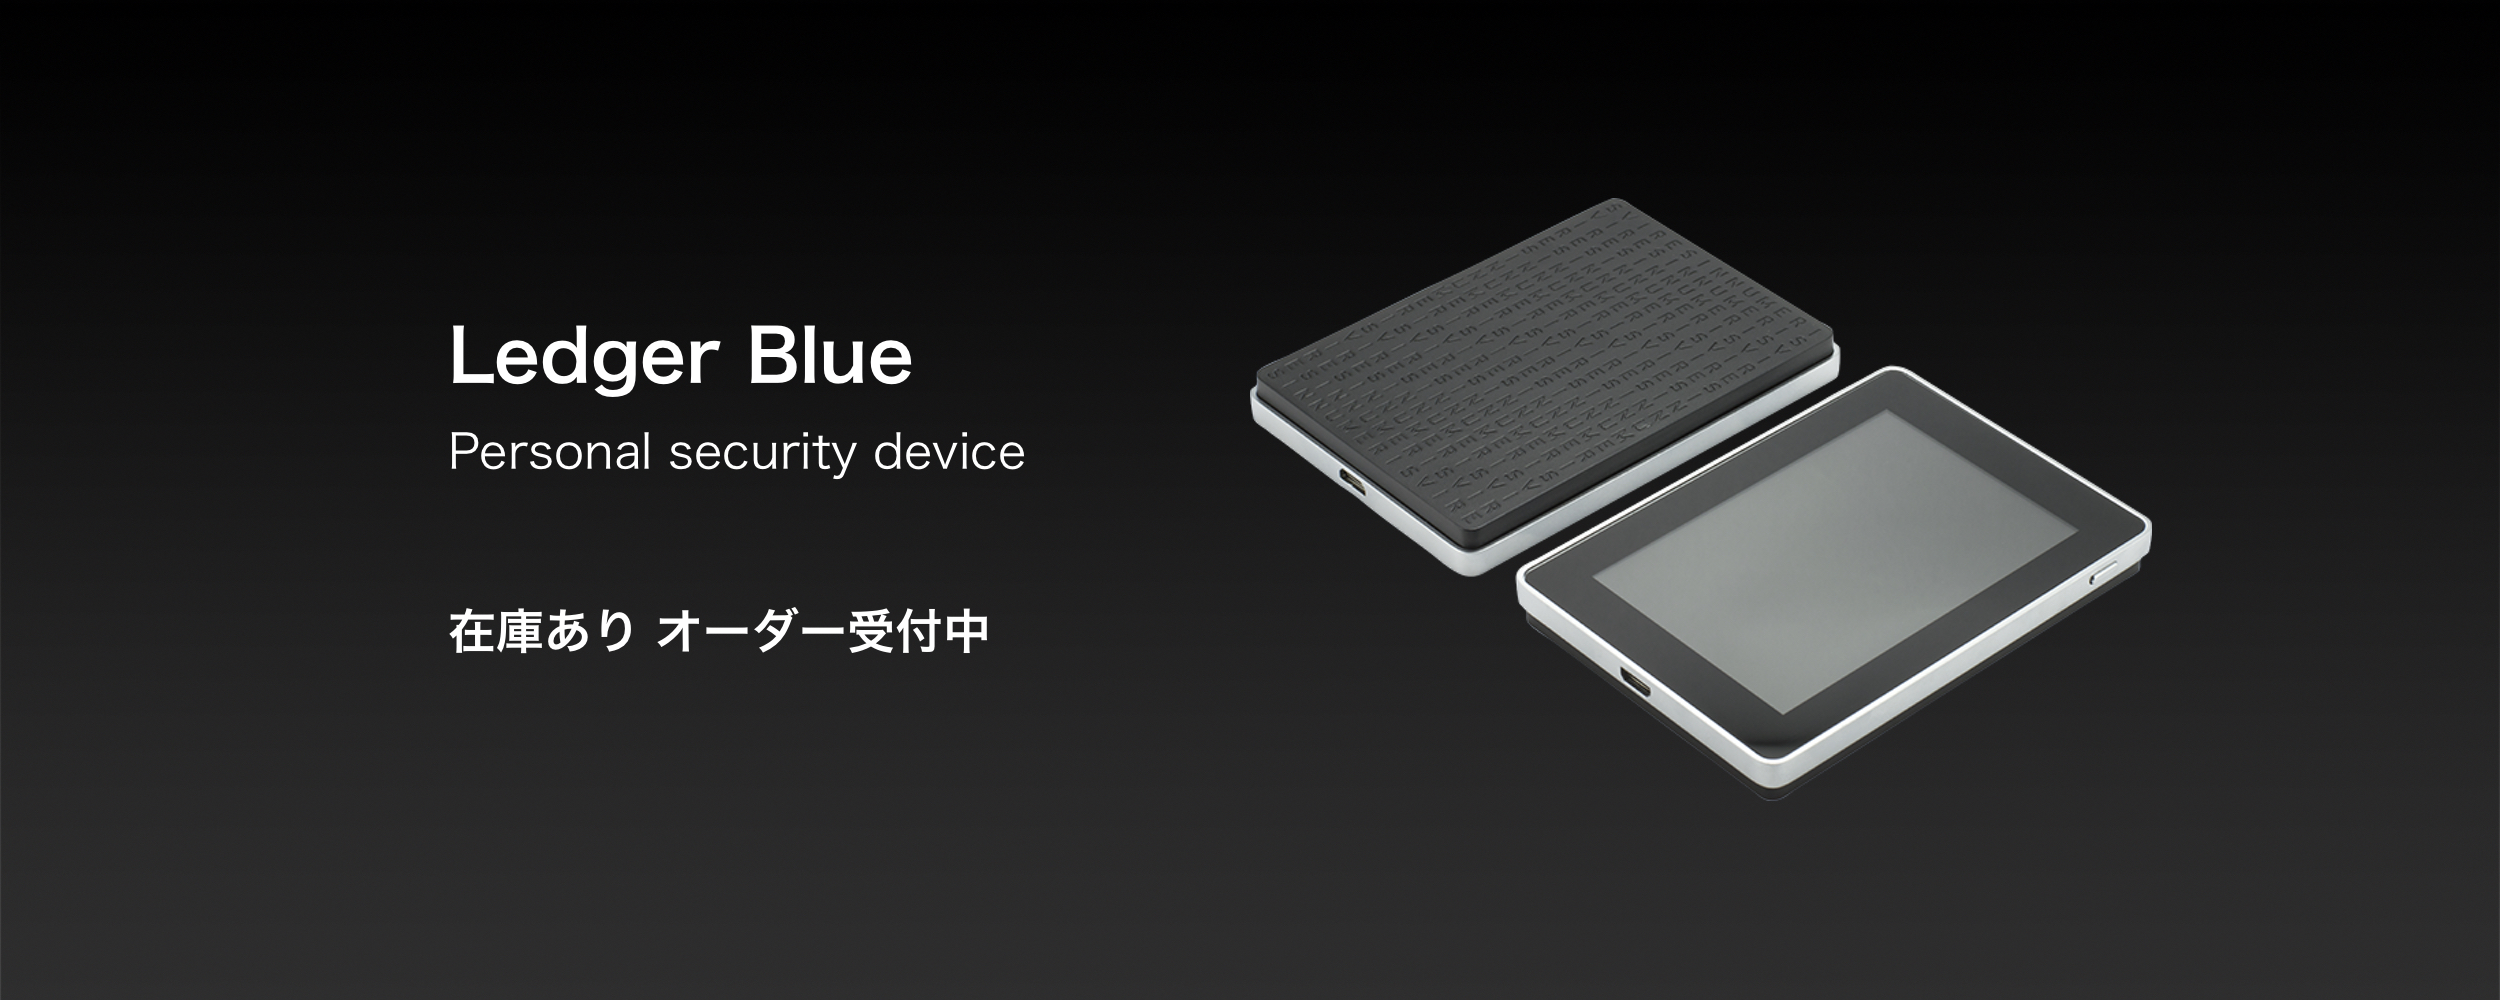 Ledger-Blue-2